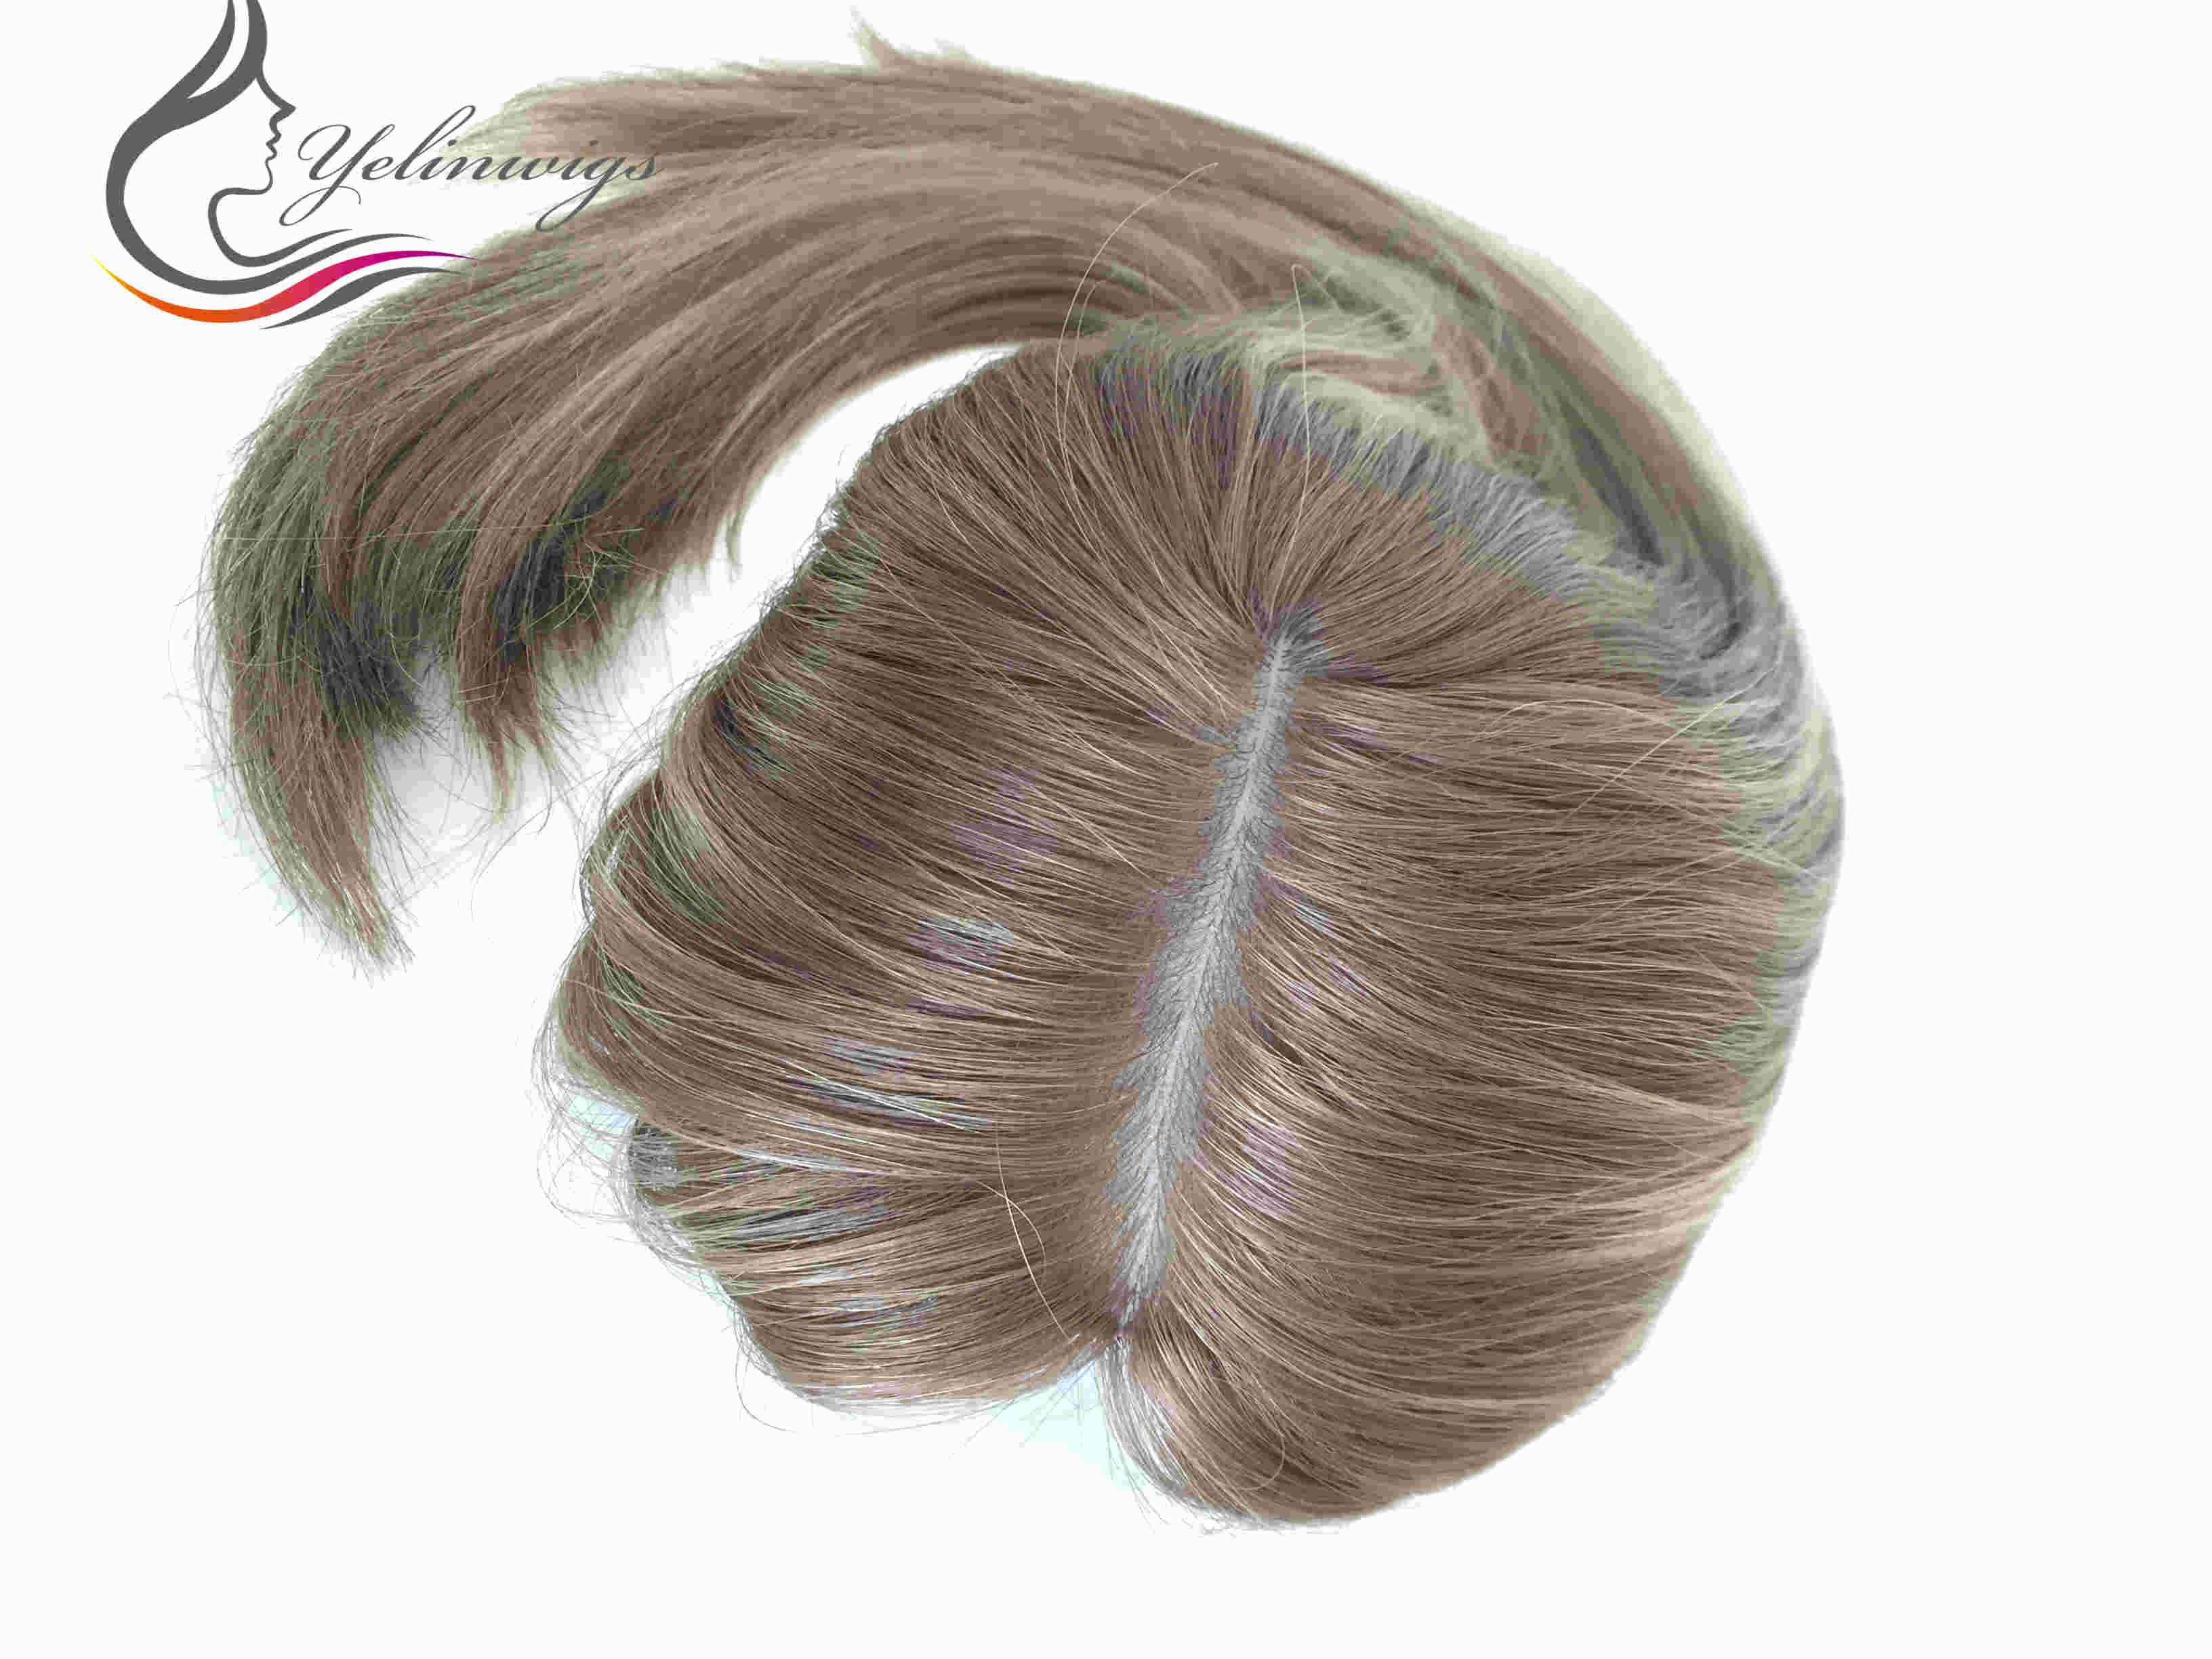 Fine European Hair Jewish Topper Hair Pieces High Quality European Hair Kippah Fall Kosher Hair Pieces